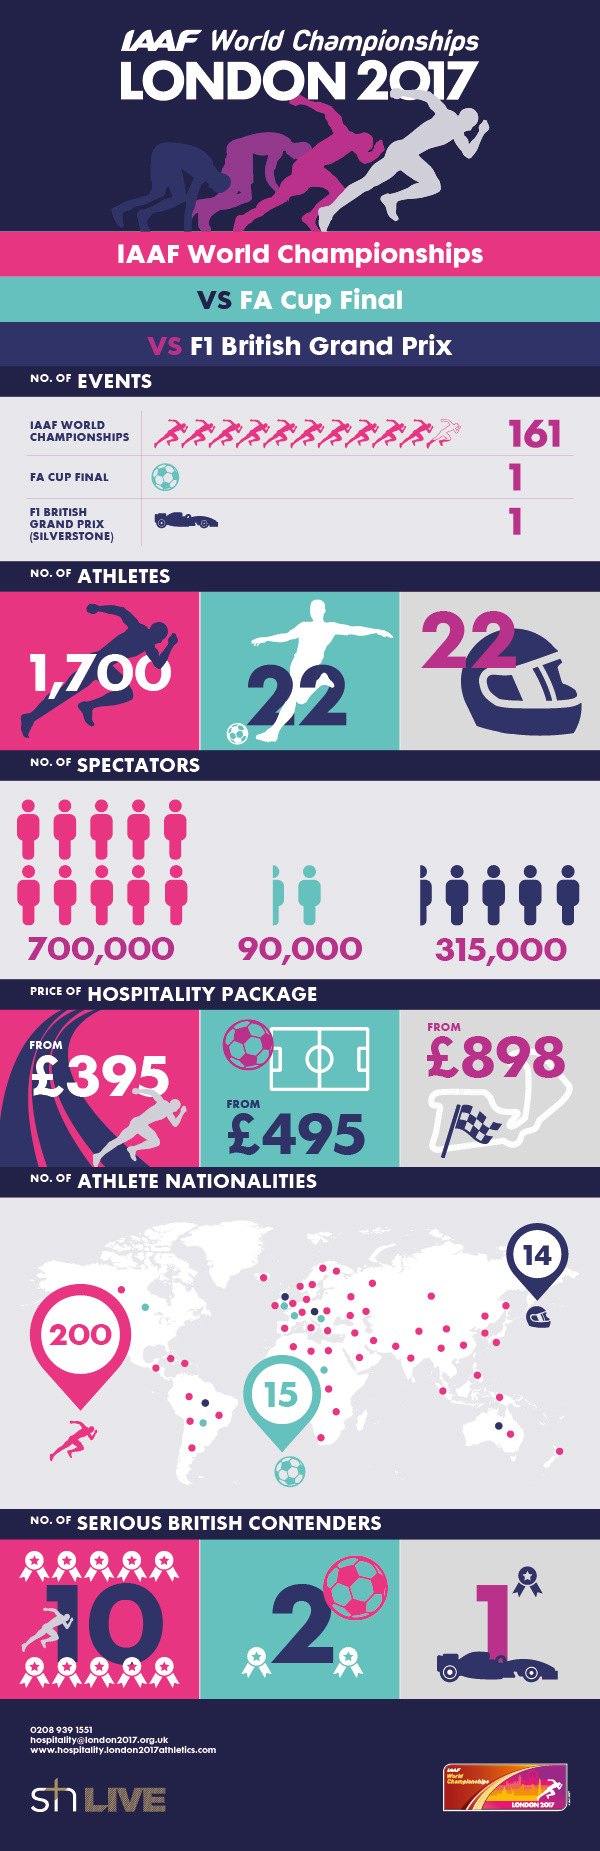 See how IAAF World Championships hospitality compares with F1 and the FA Cup Final